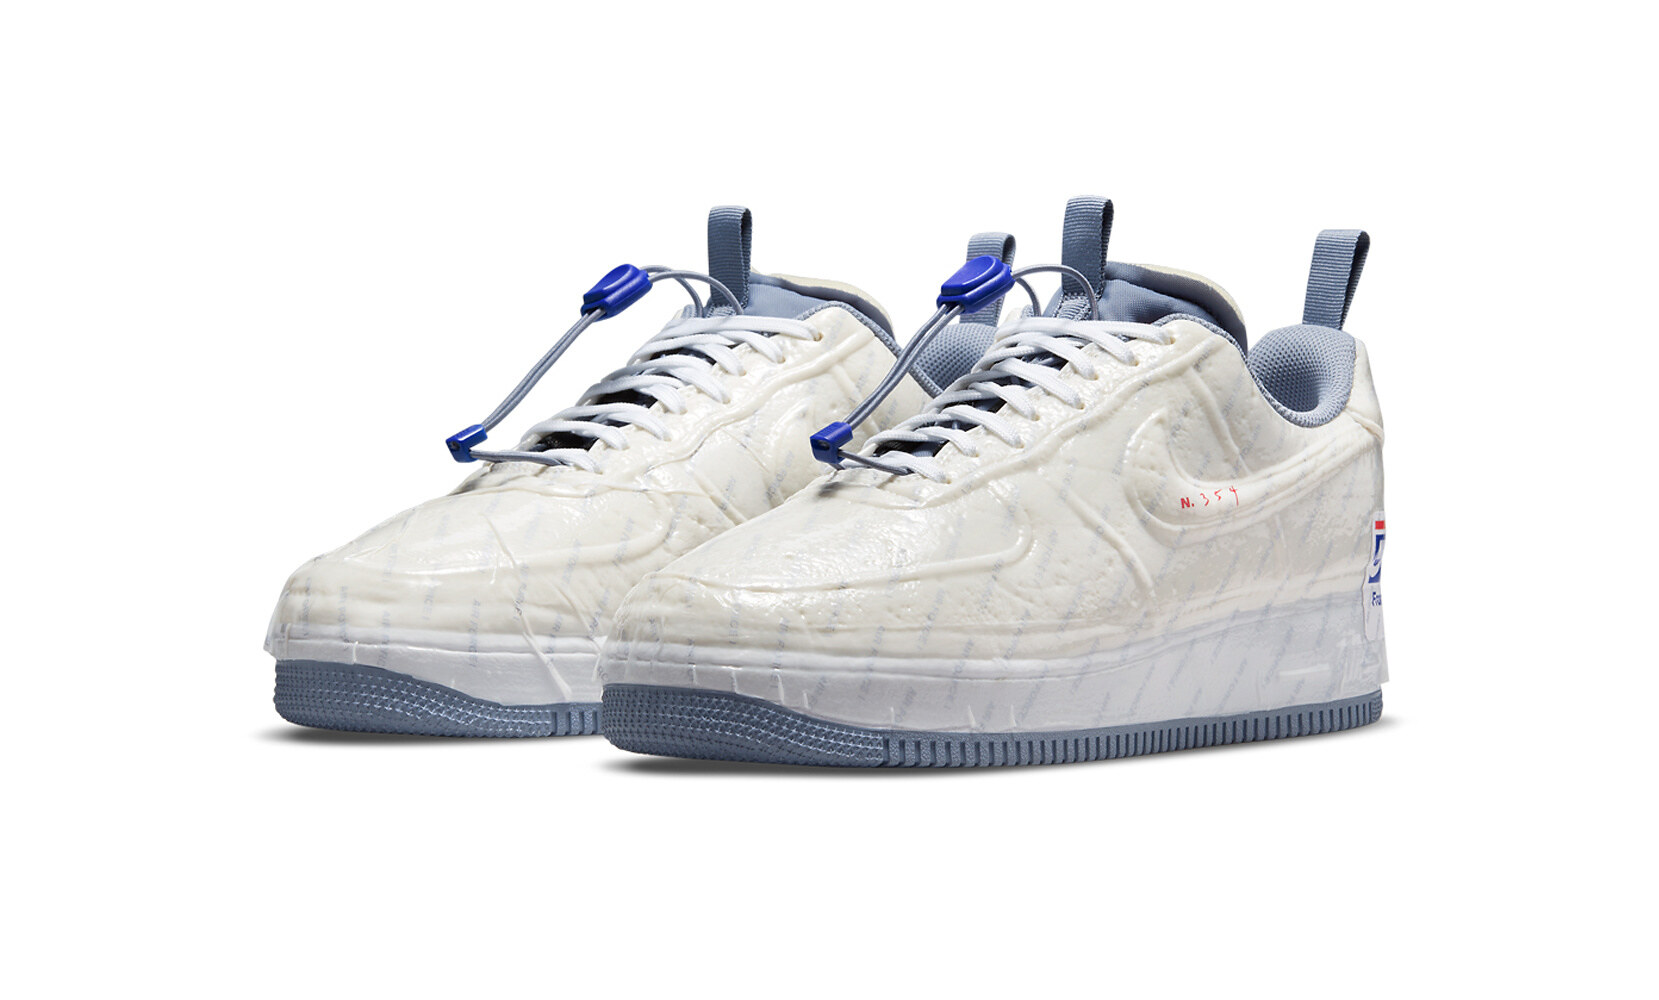 Nike Air Force 1 Low USPS